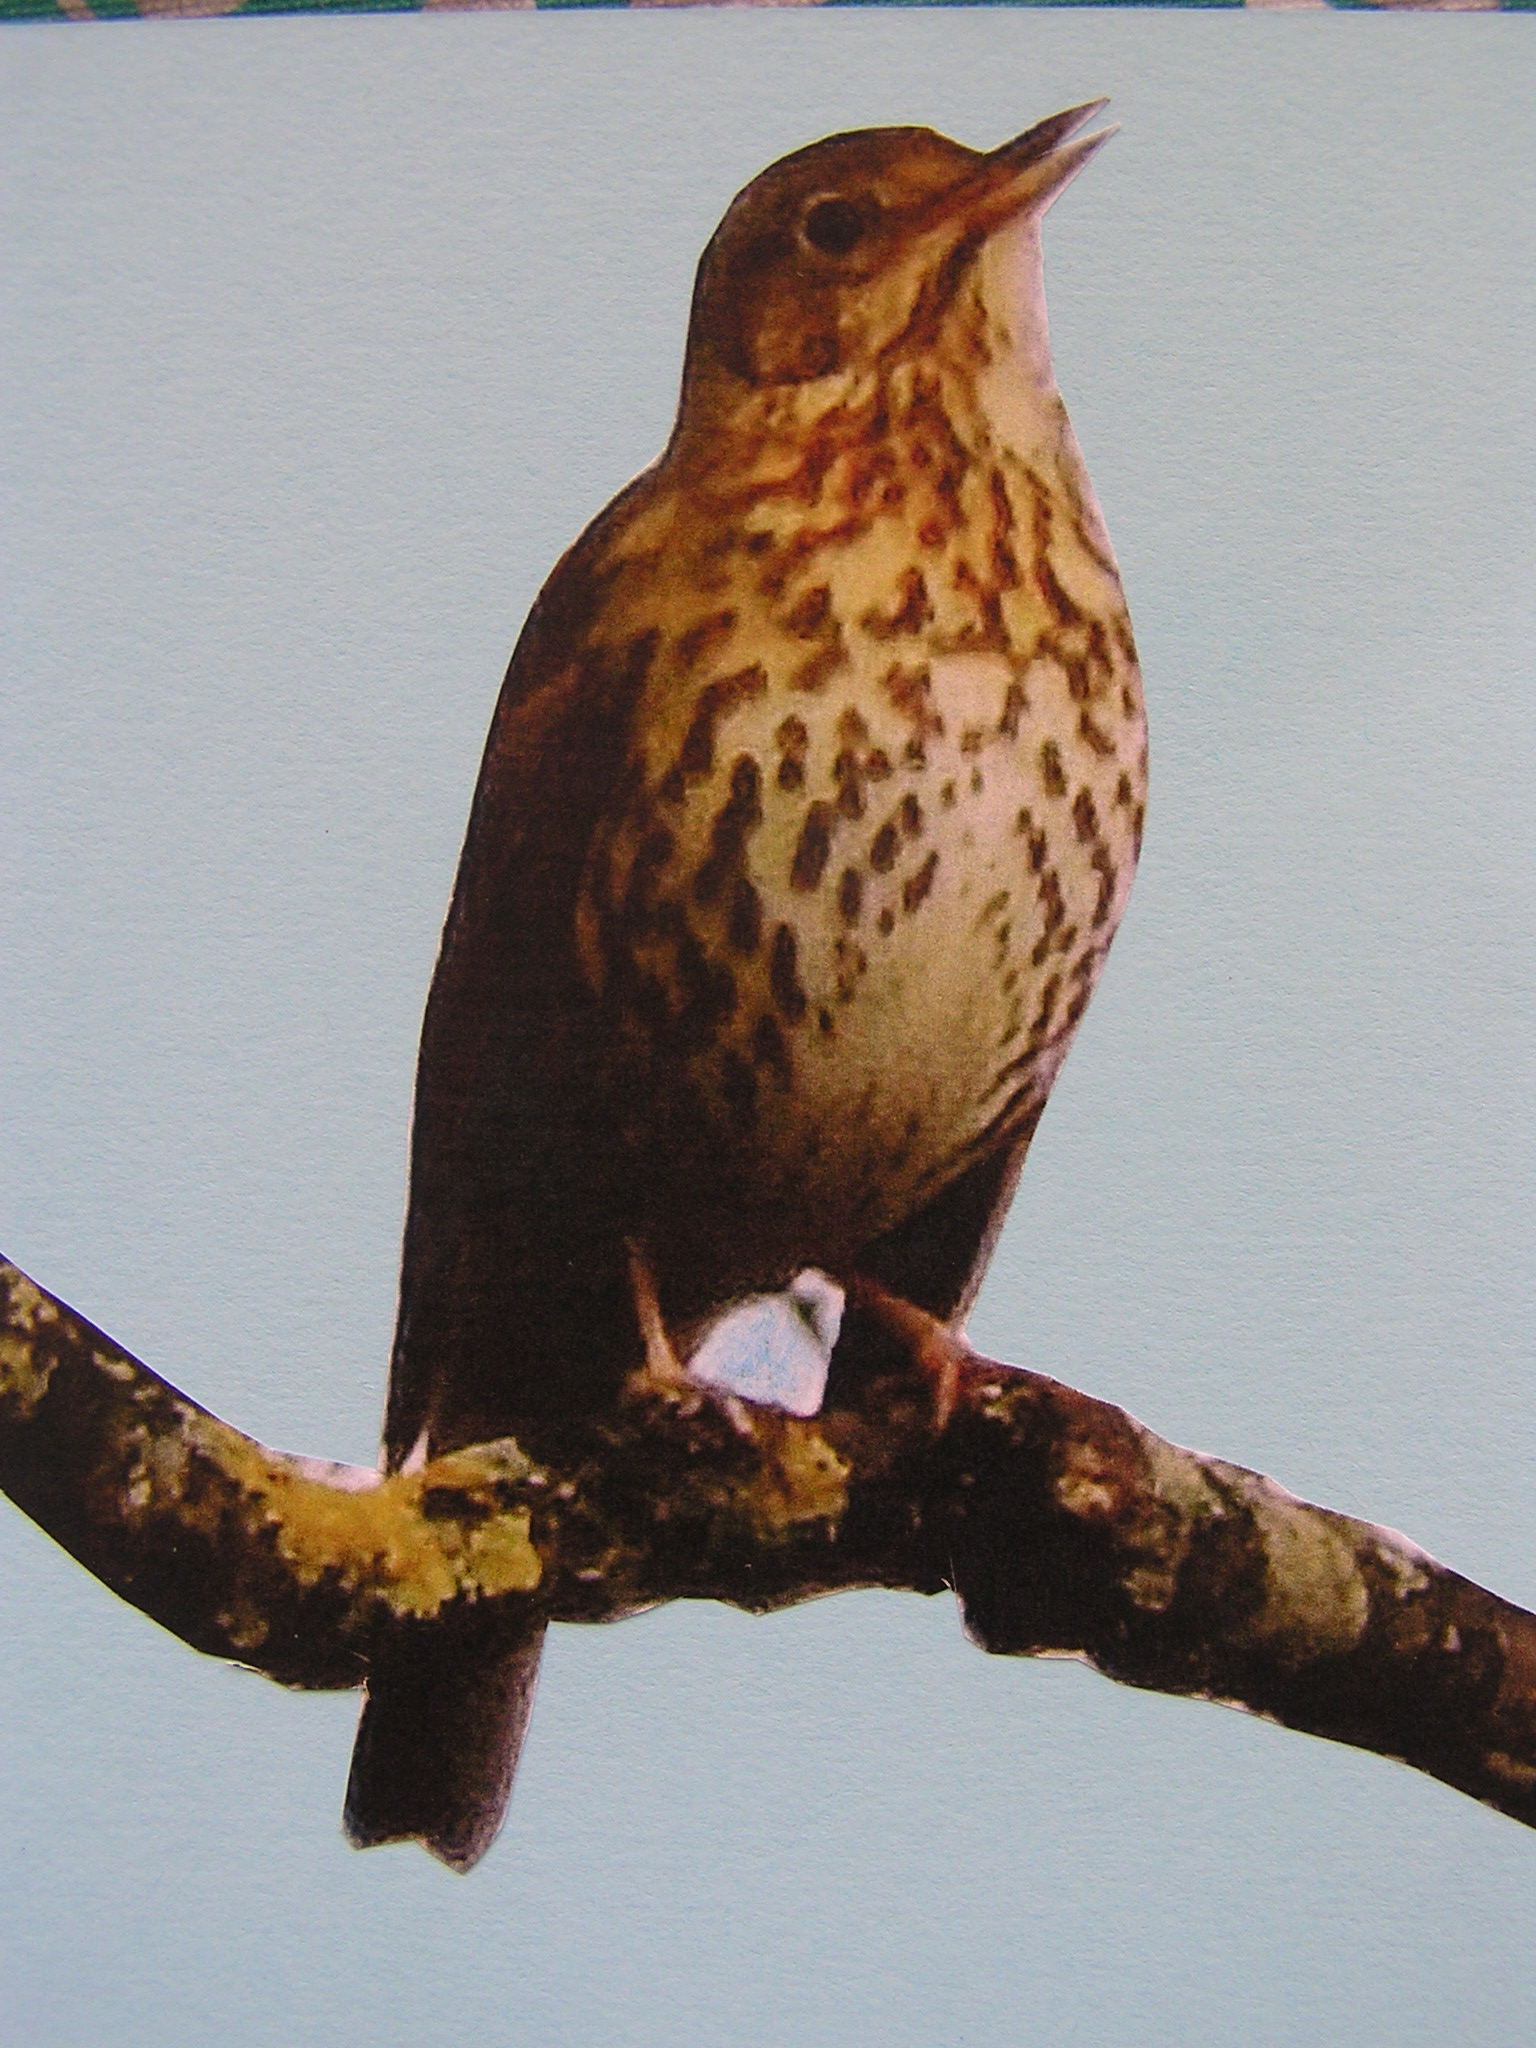 Delight in watching my favorite avian songsters - the songthrush